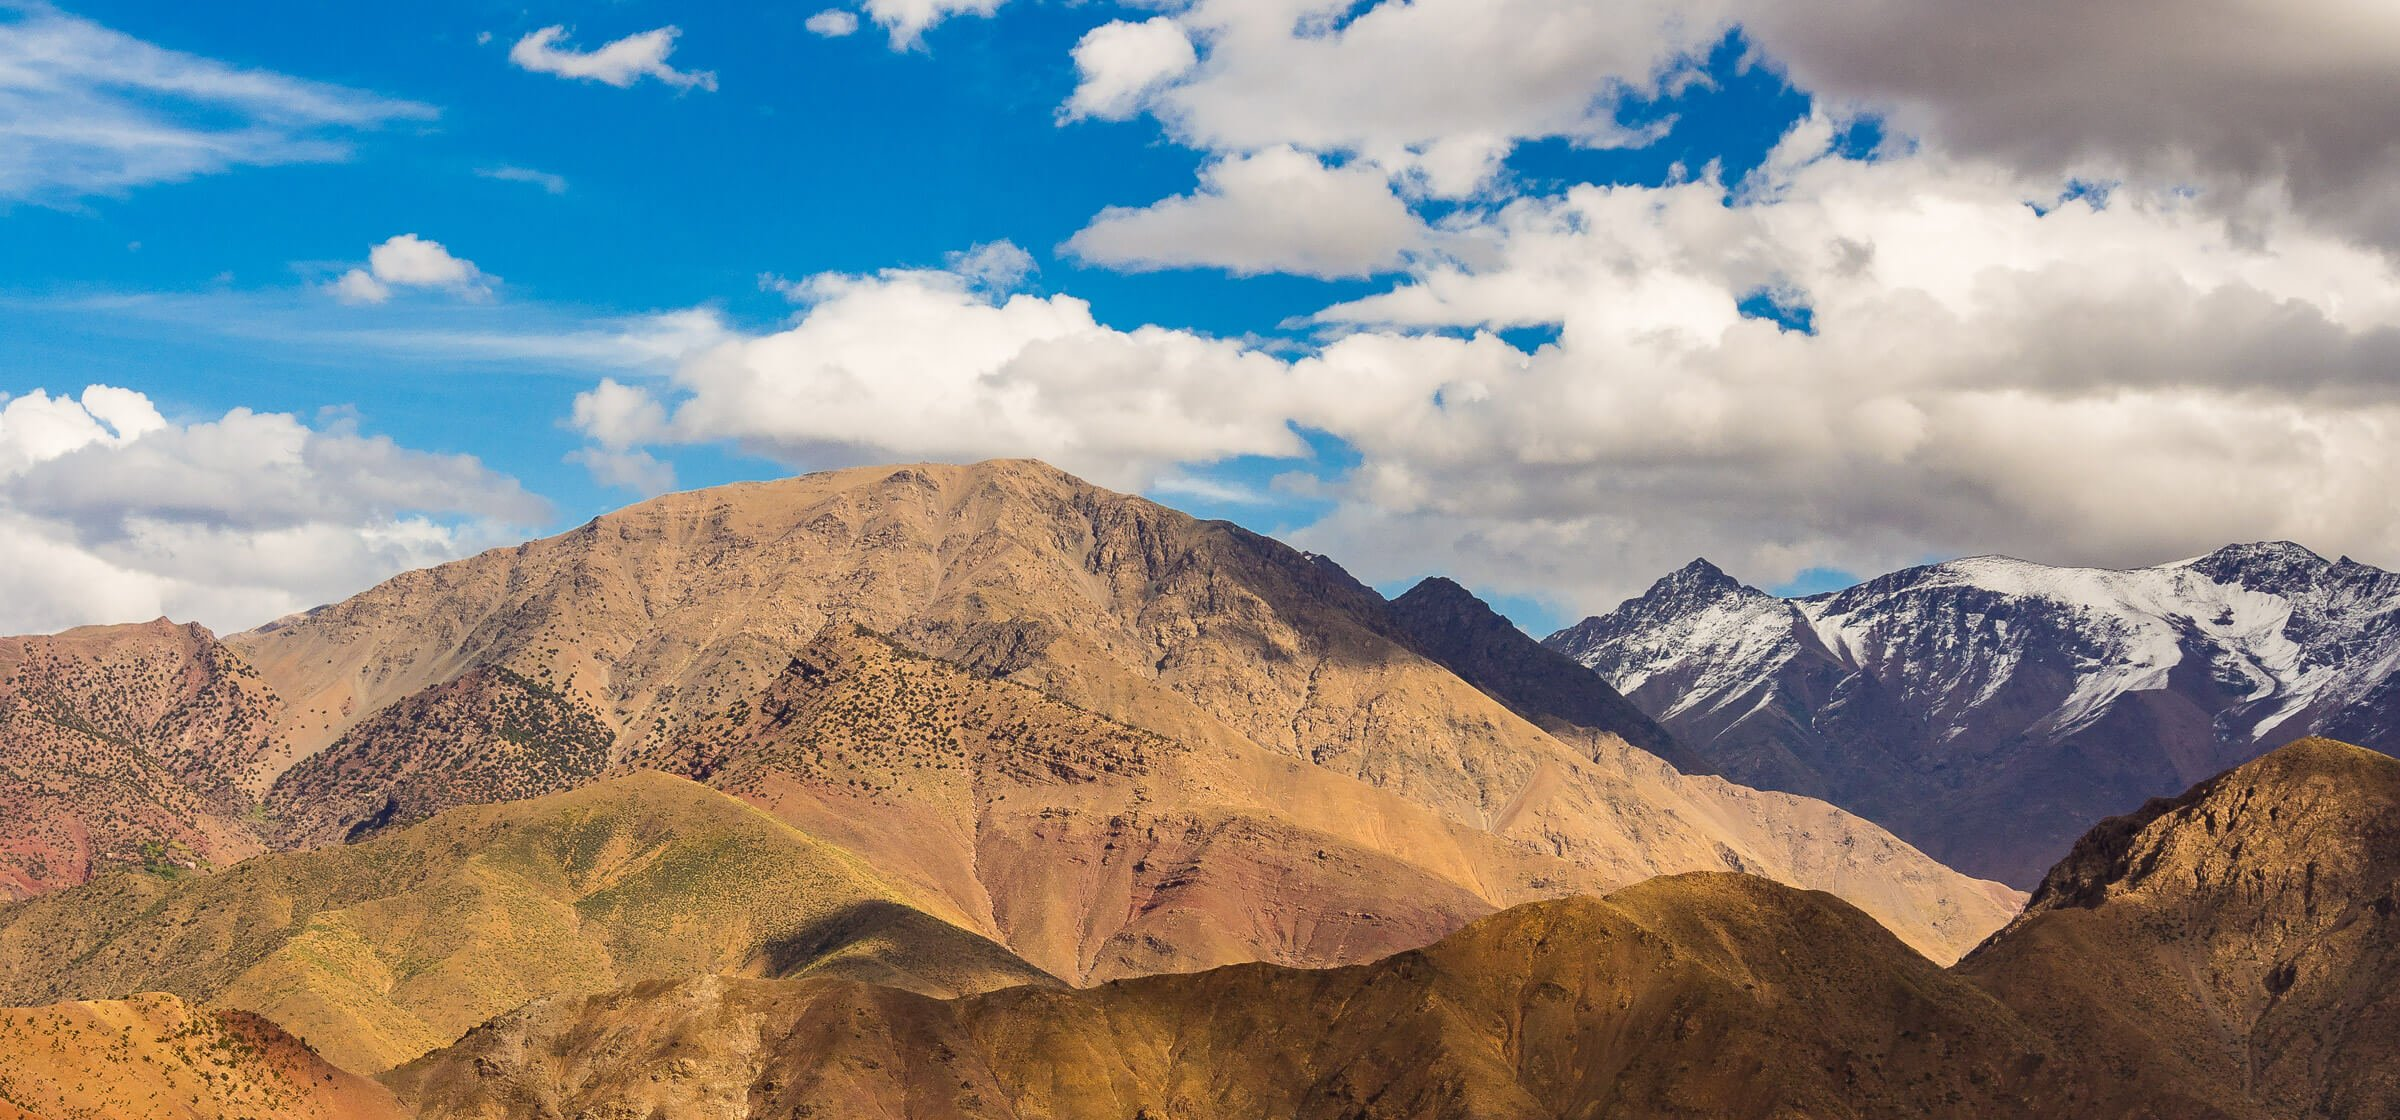 Clouds Over the Atlas Mountains' Peaks, Morocco